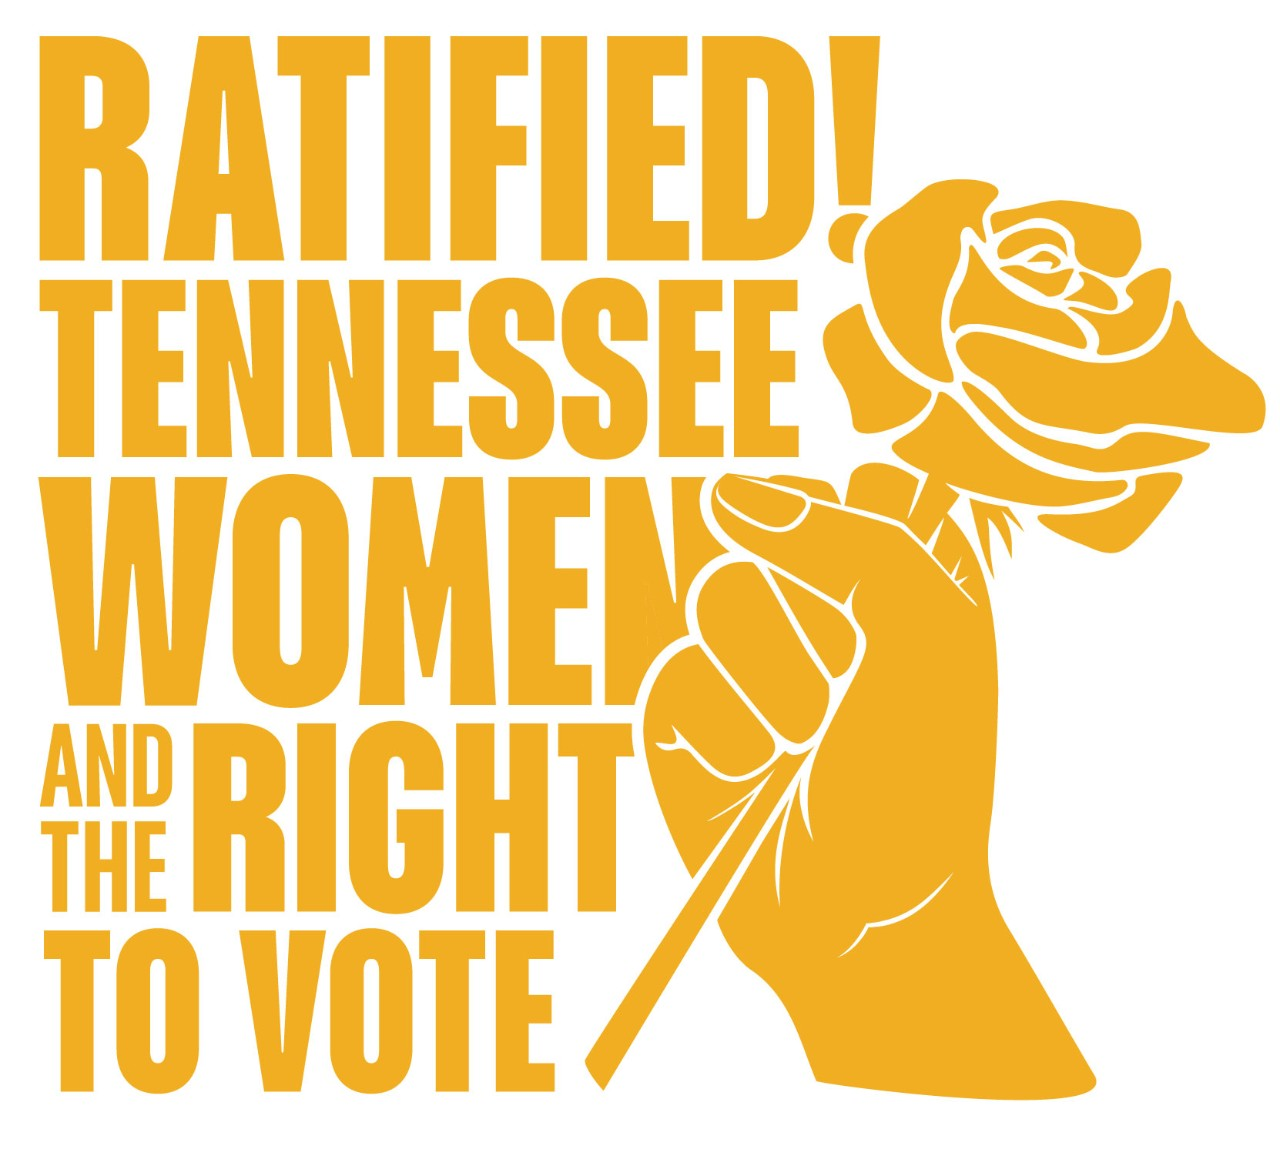 Ratified! Tennessee Women and the Right to Vote (Logo)